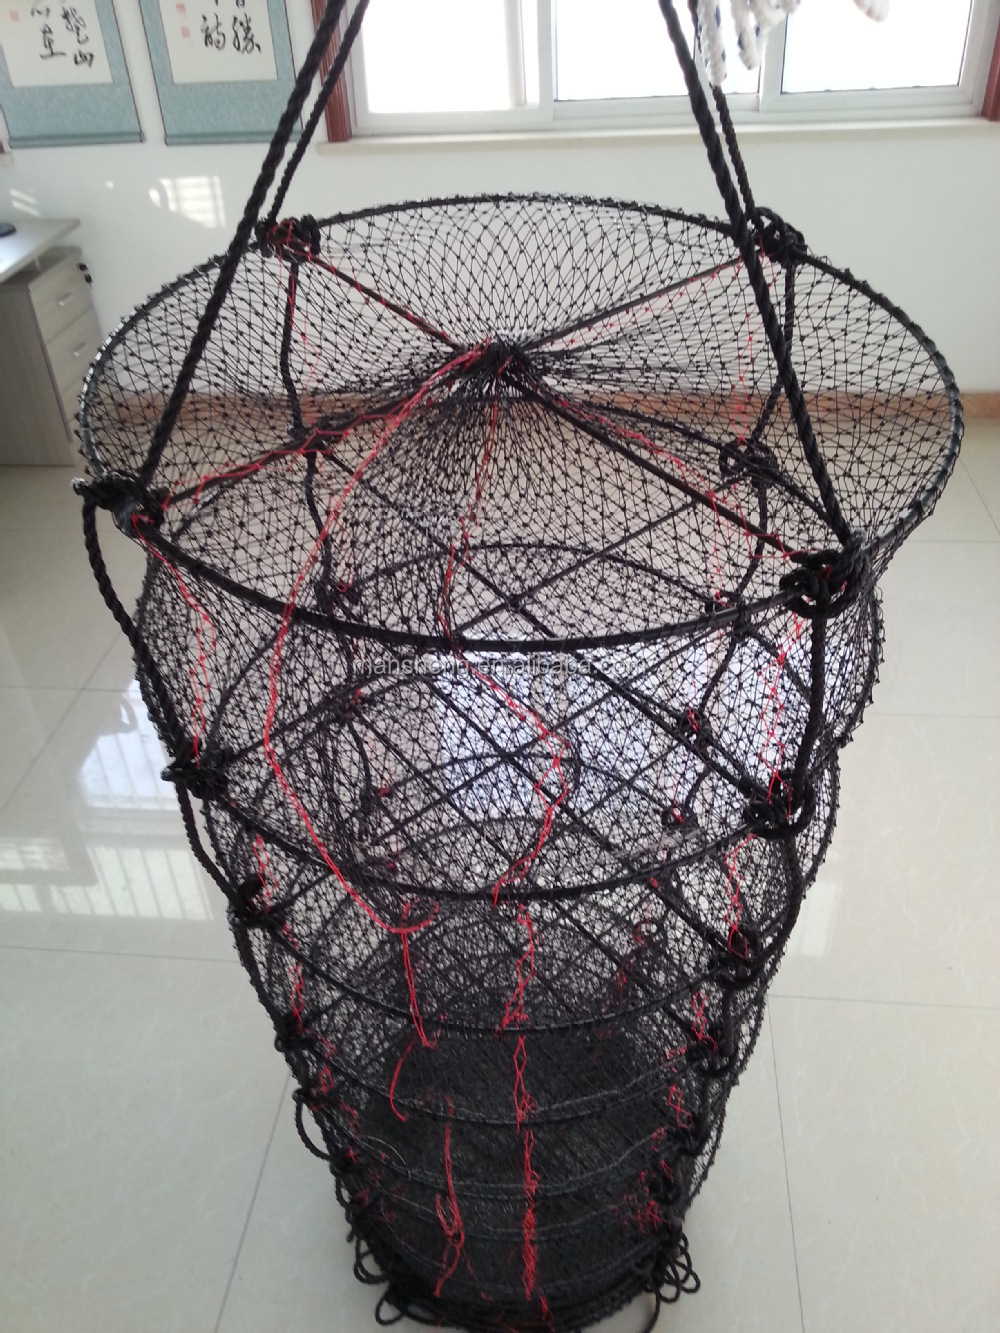 Aquaculture Nets Cage For Scallop Oyster Farming Buy